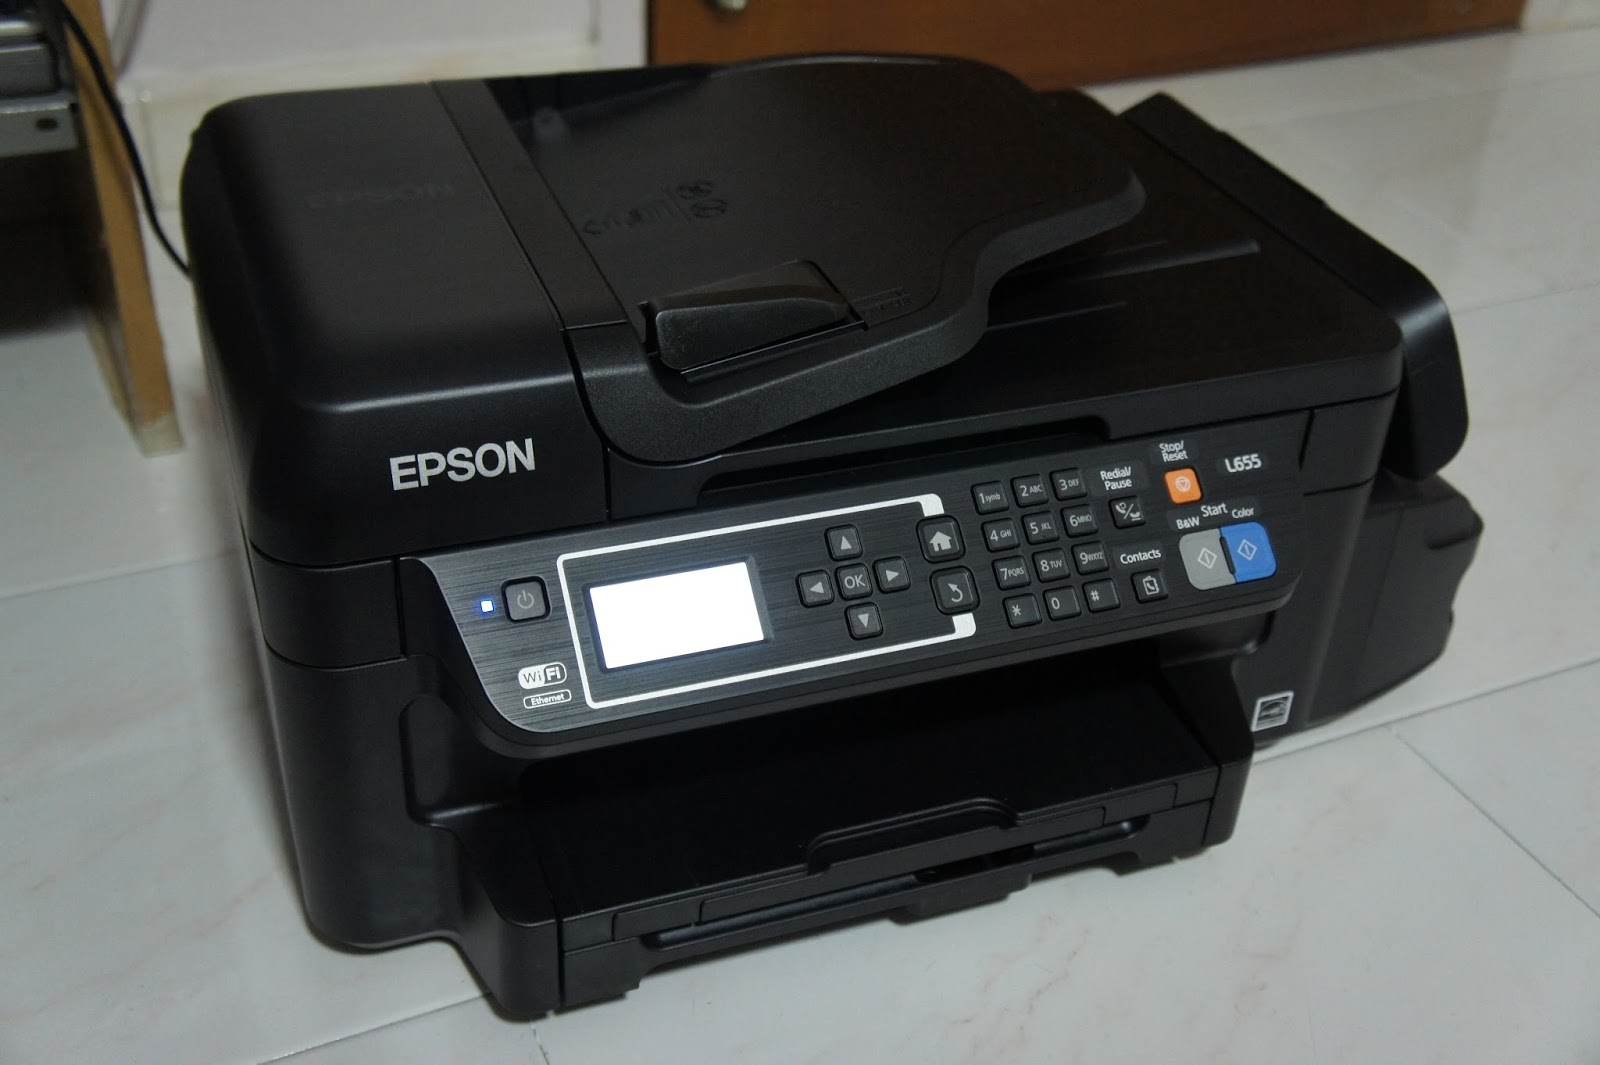 Review of Epson L655 Ink Tank System Printer - The Tech